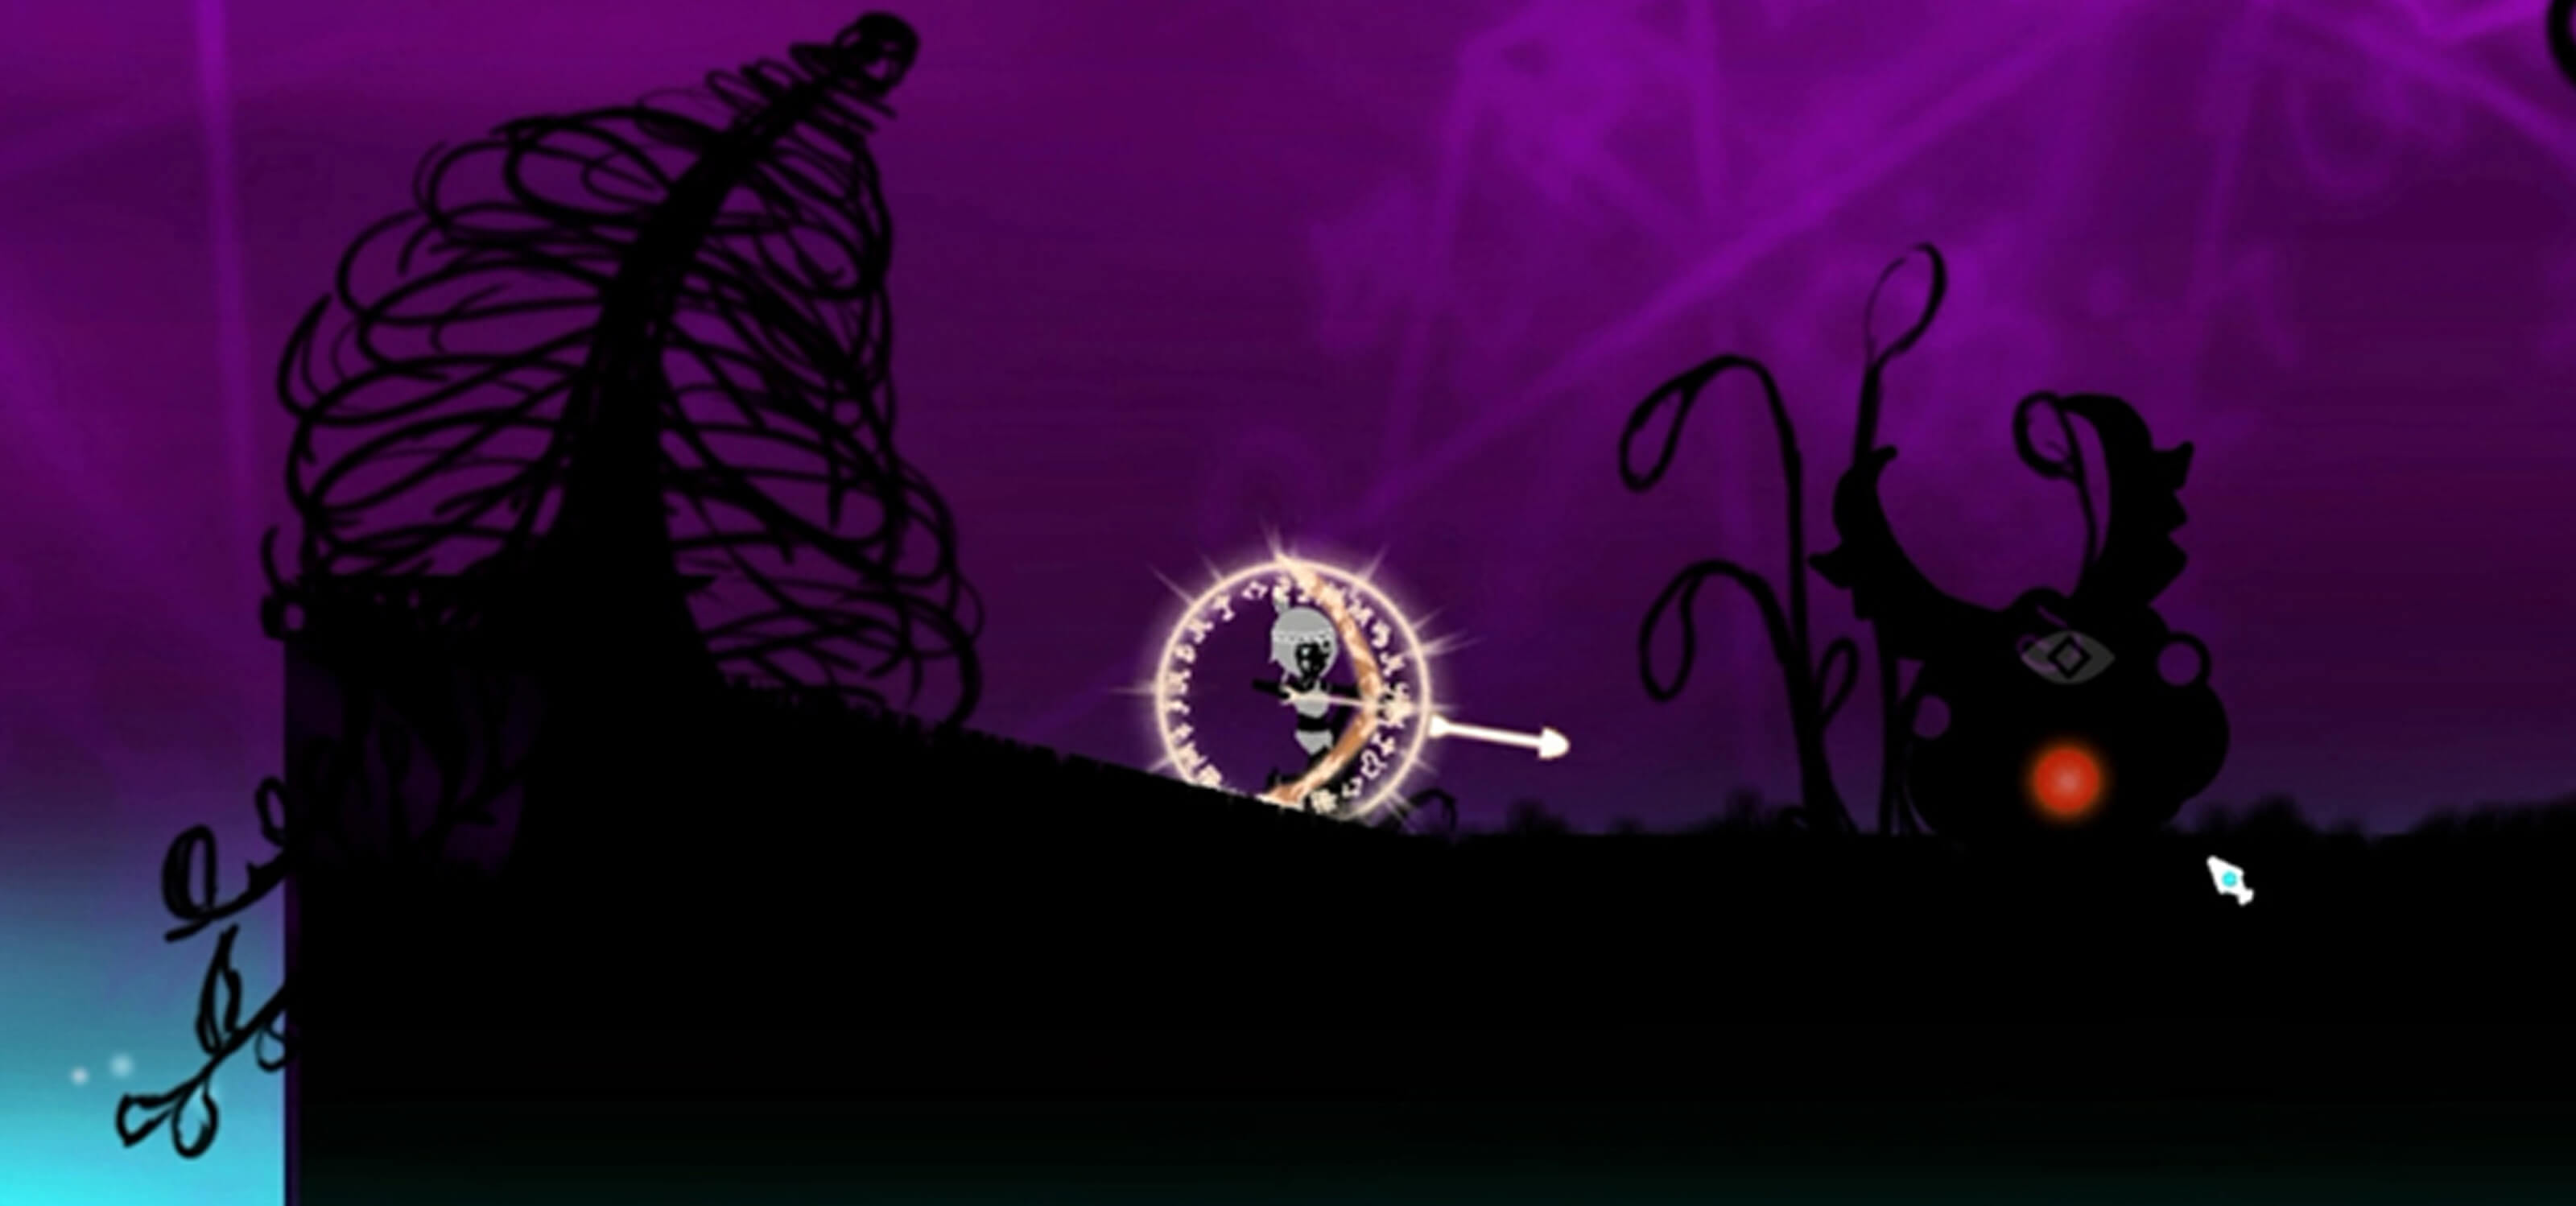 Screenshot of character Iris surrounded by a magical rune, aiming in arrow in a shadowy world with a purple background